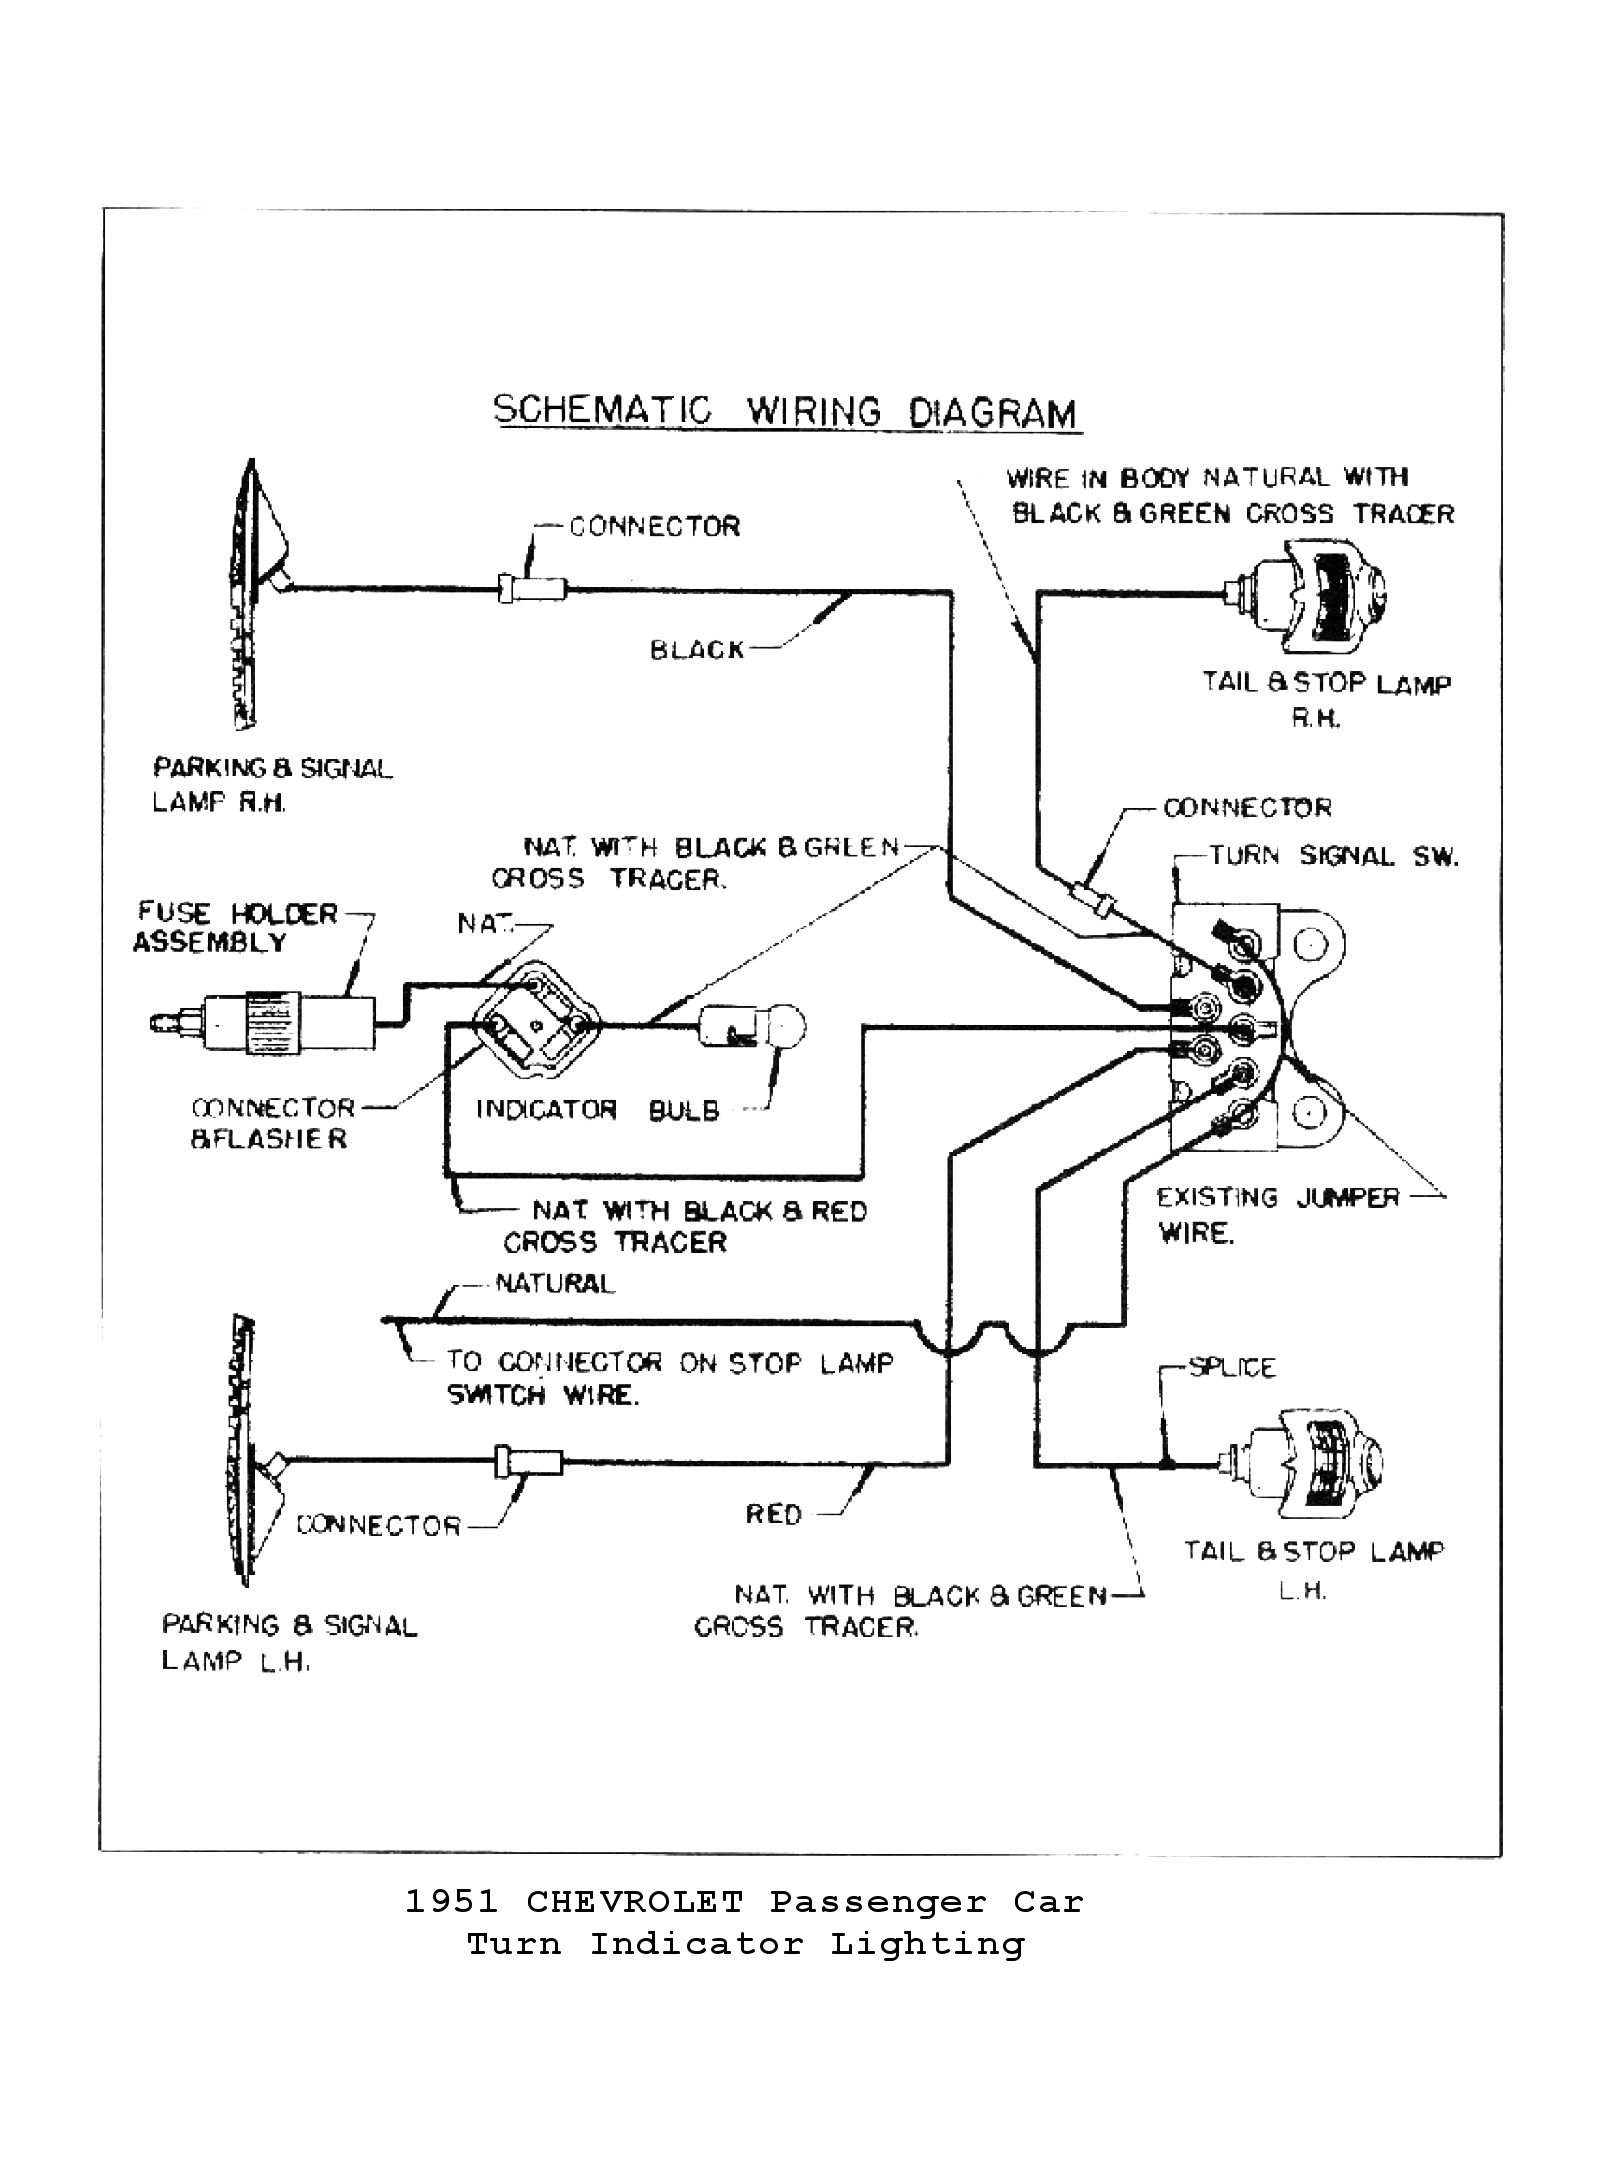 5152turnsignals chevy wiring diagrams 2001 chevy silverado tail light wiring diagram at webbmarketing.co